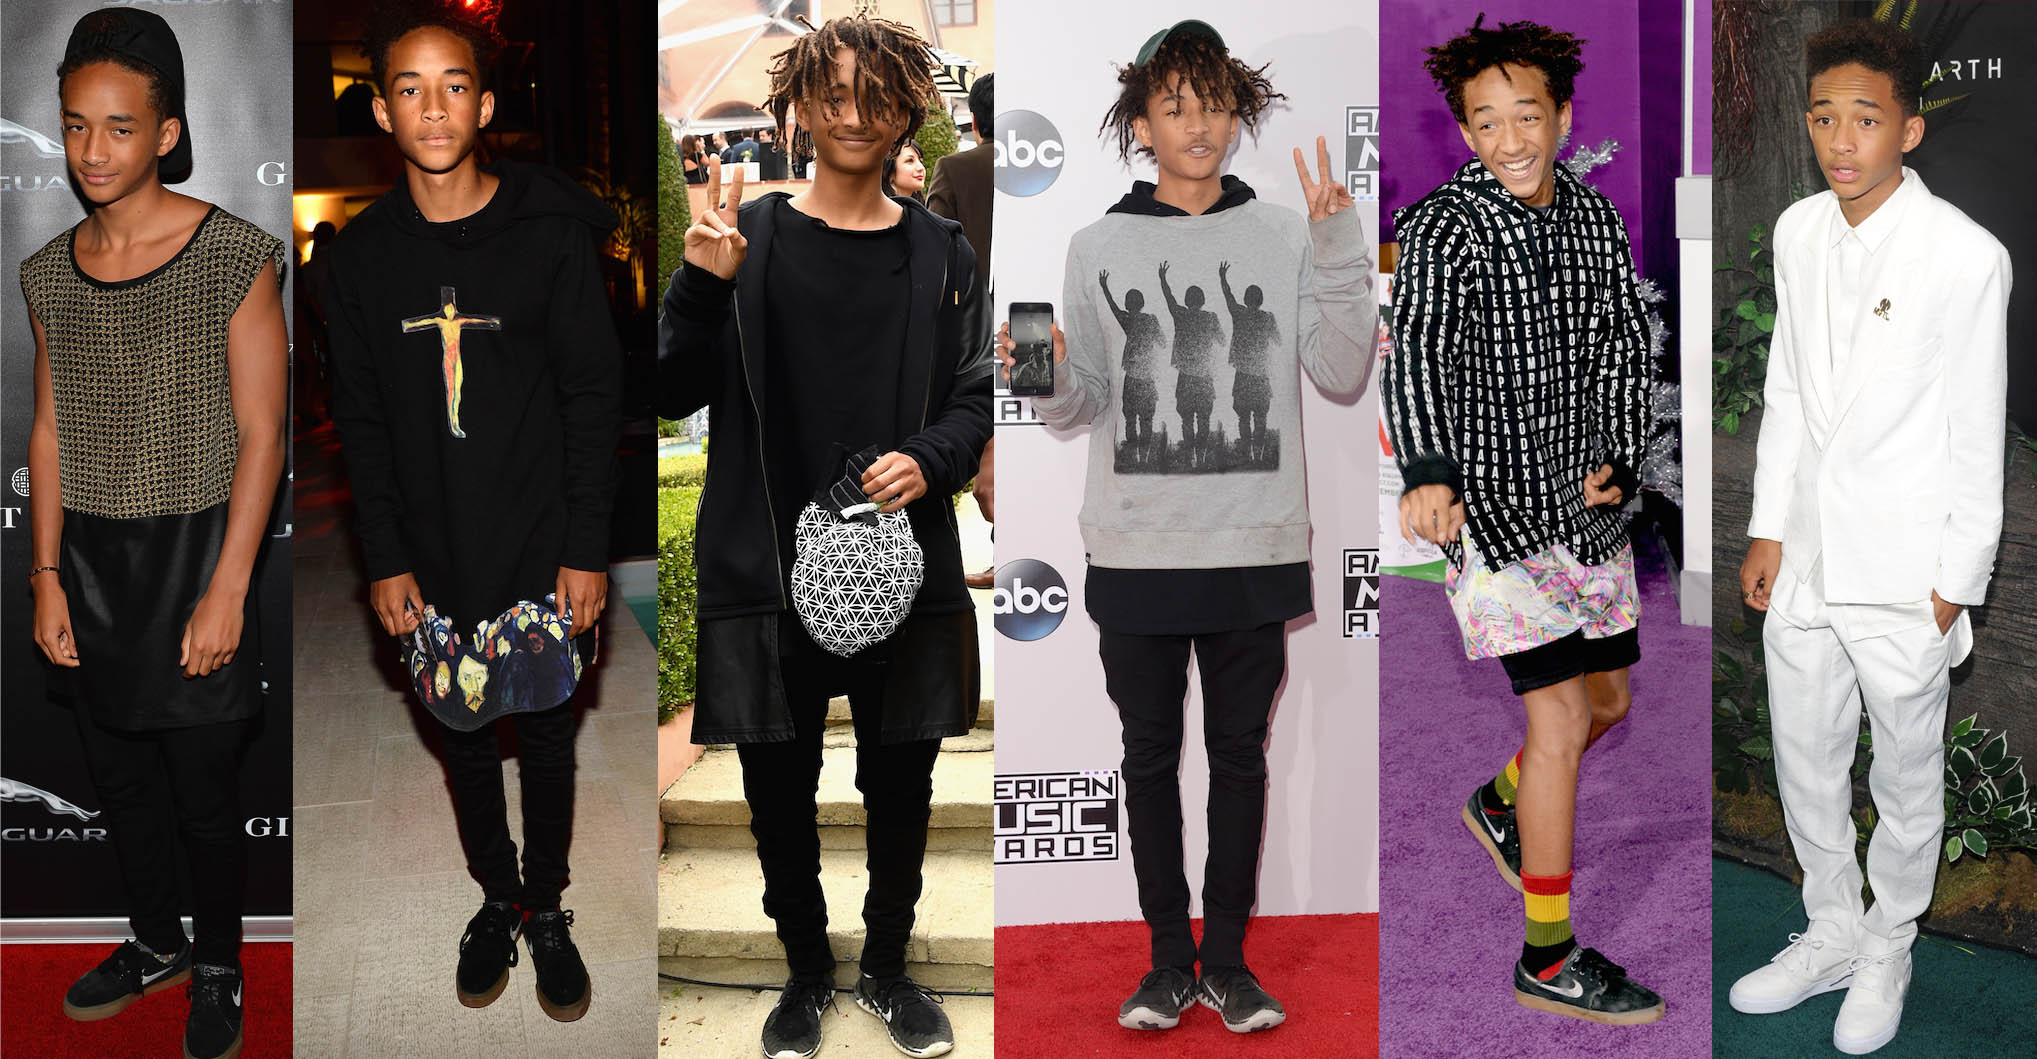 Jaden smith dresses 2015 dress images for Jaden smith 2015